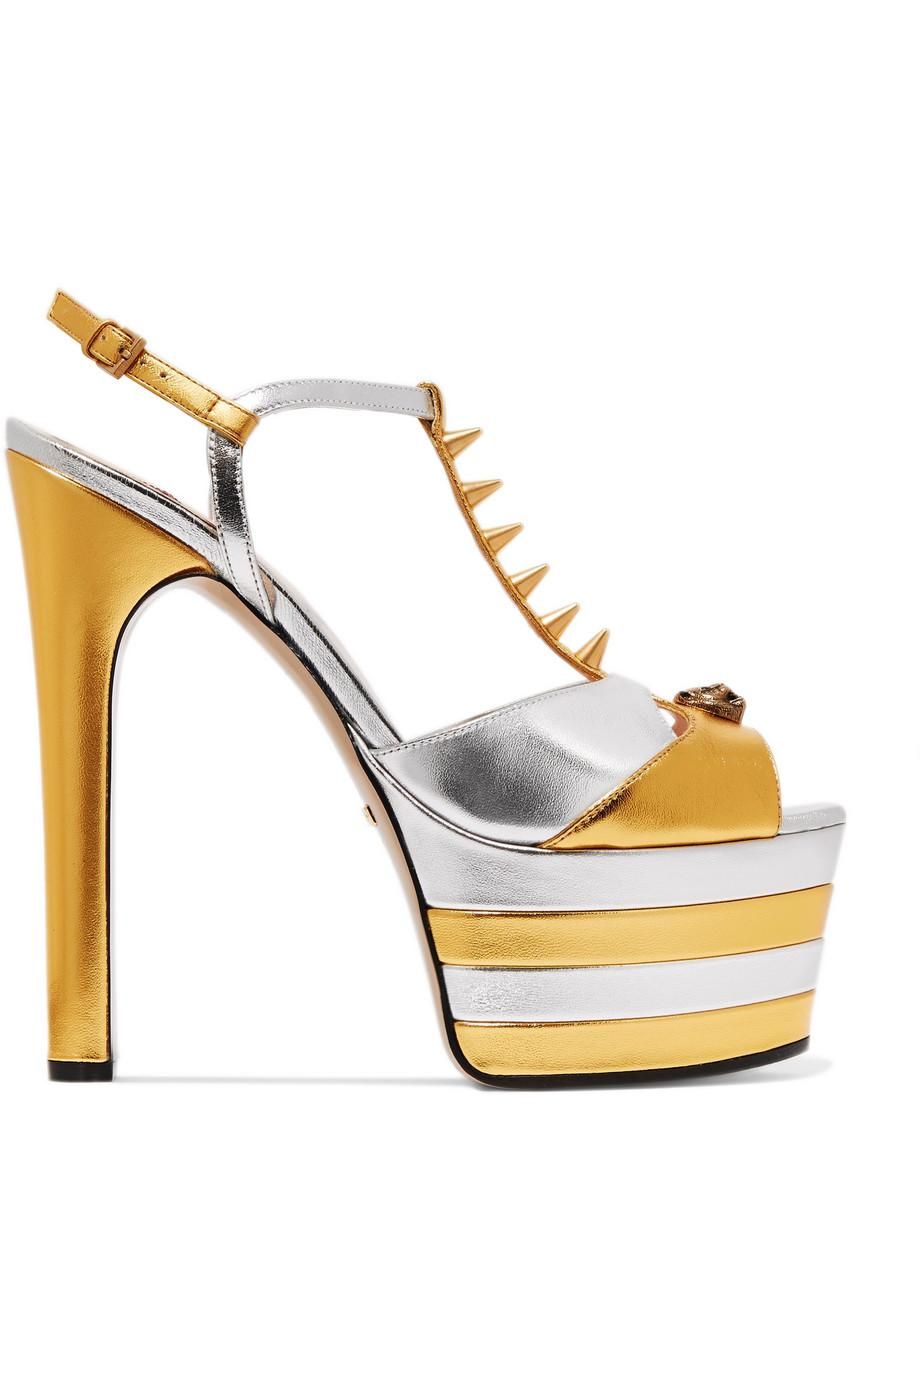 1587aee53556 Lyst - Gucci Studded Two-tone Metallic Leather Platform Sandals in ...